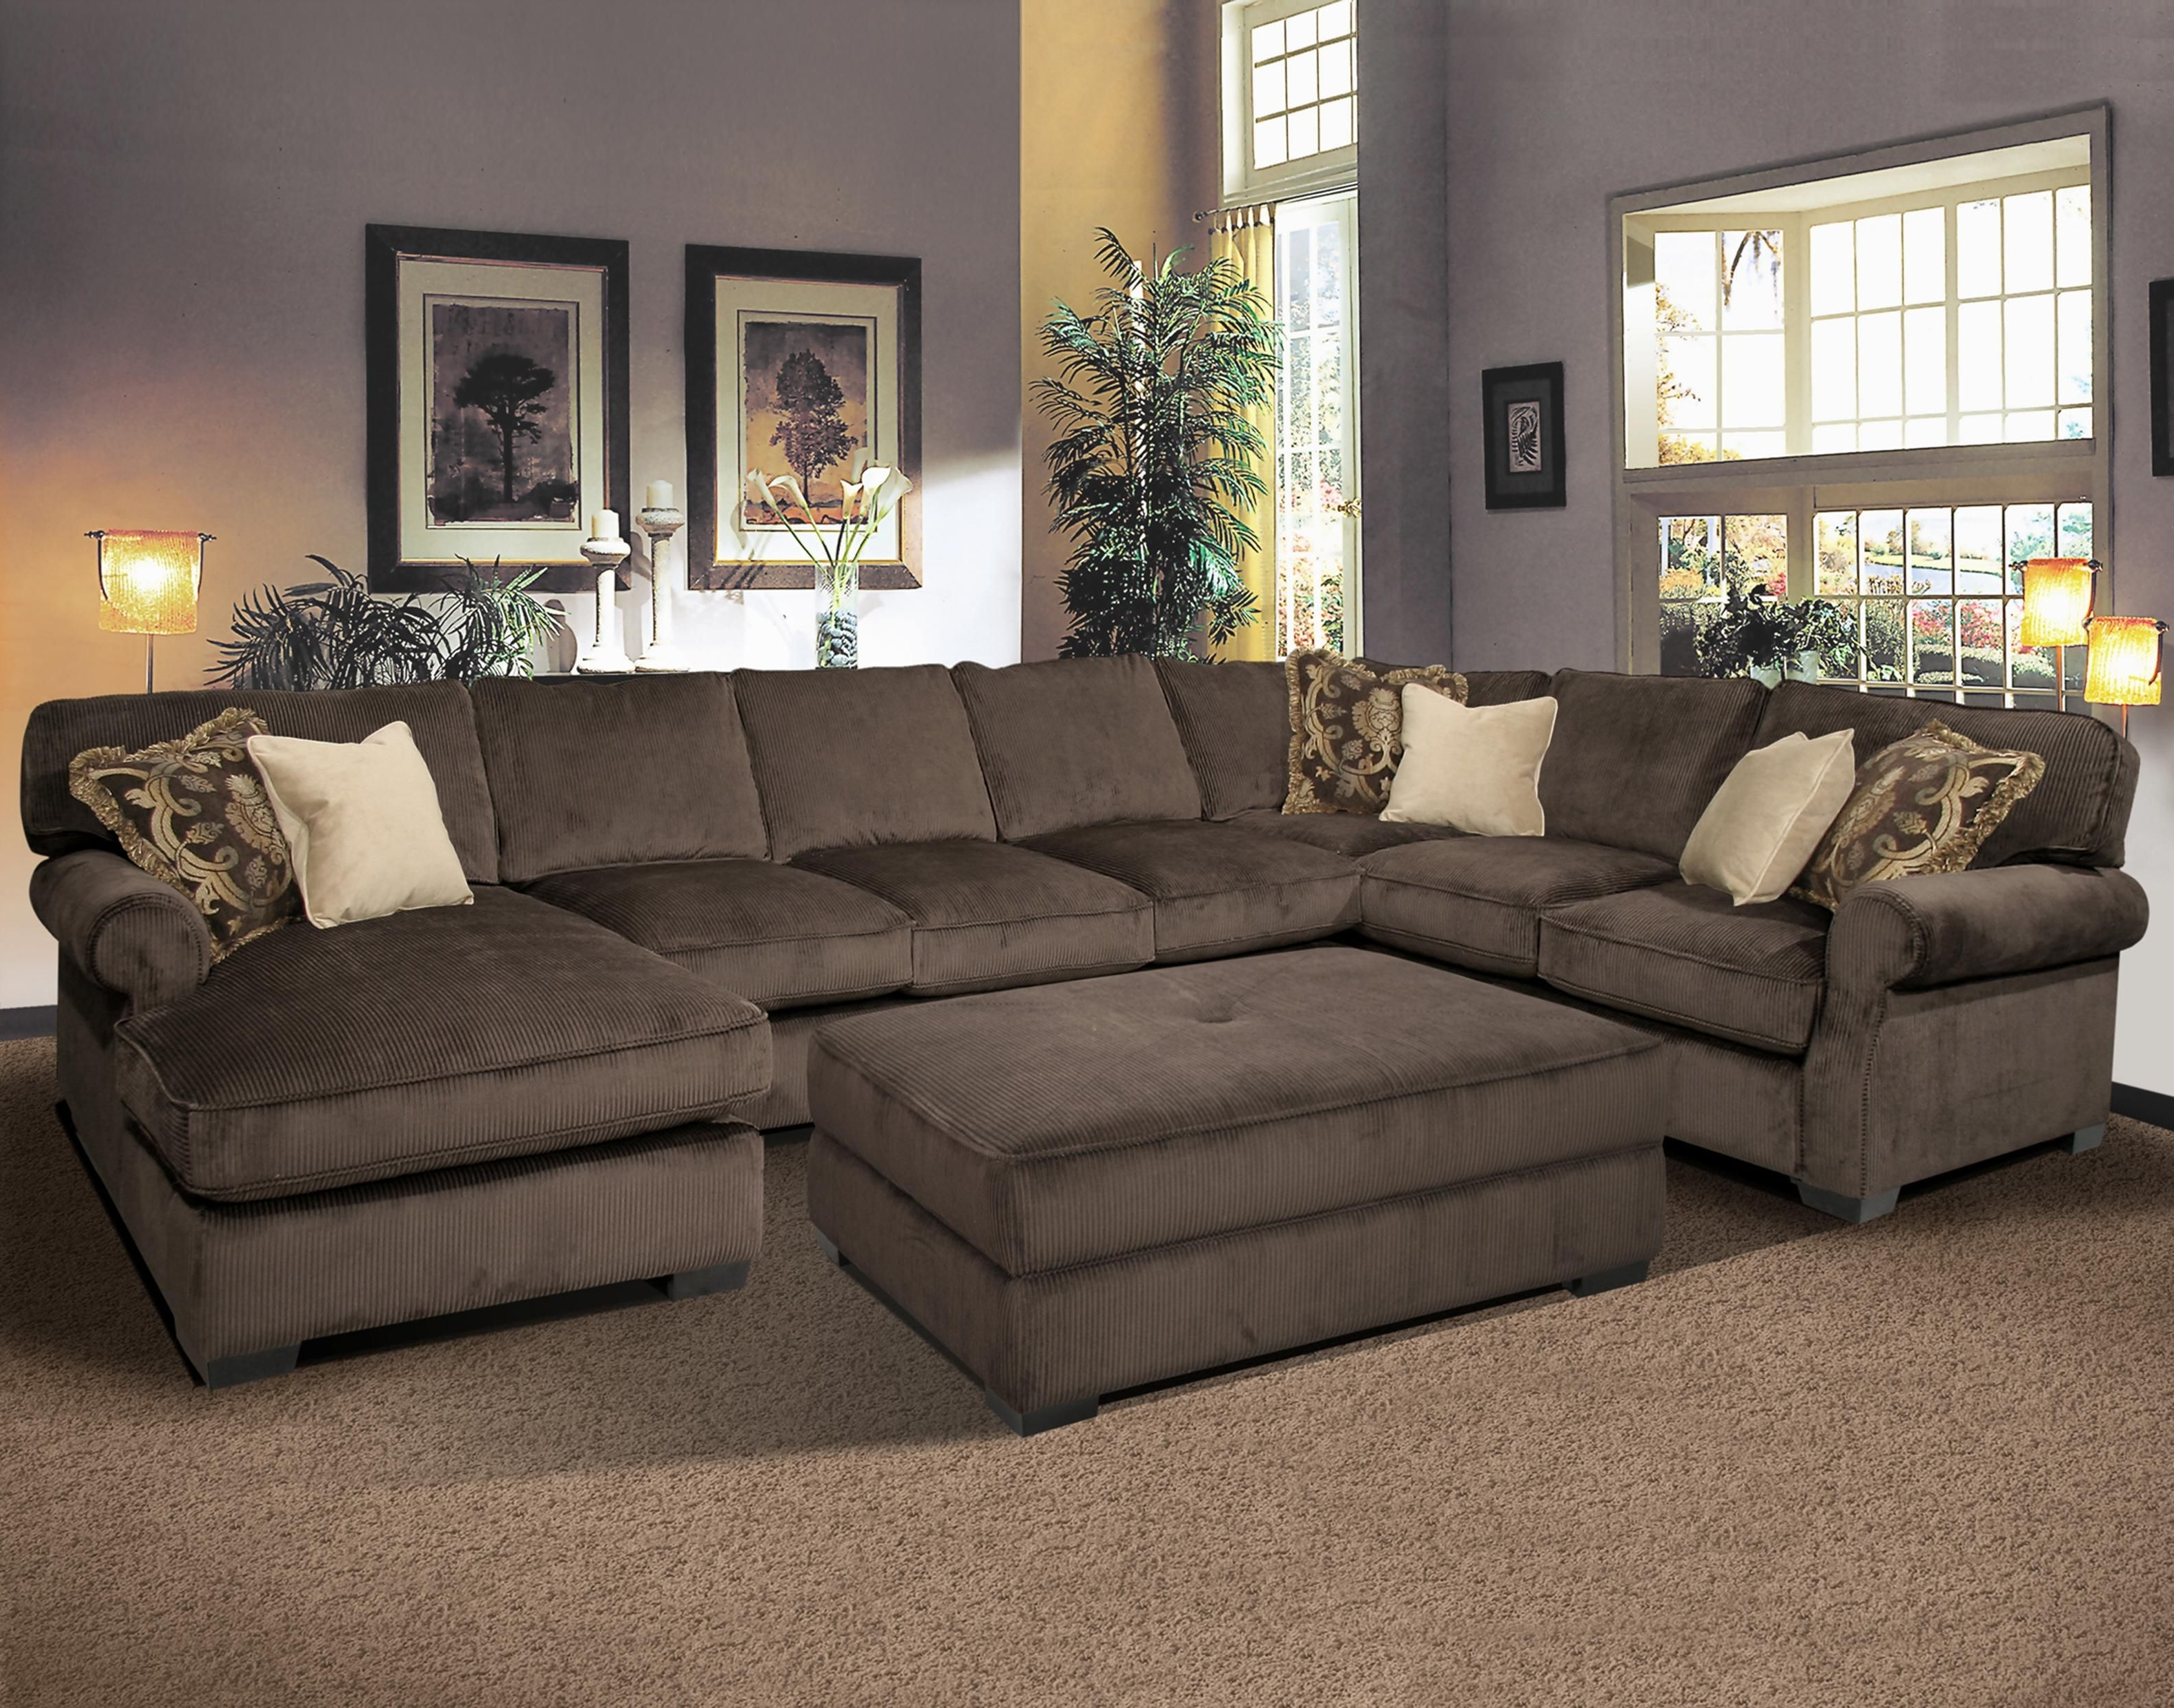 Best And Newest Pittsburgh Sectional Sofas With Regard To Big And Comfy Grand Island Large, 7 Seat Sectional Sofa With Right (View 2 of 15)